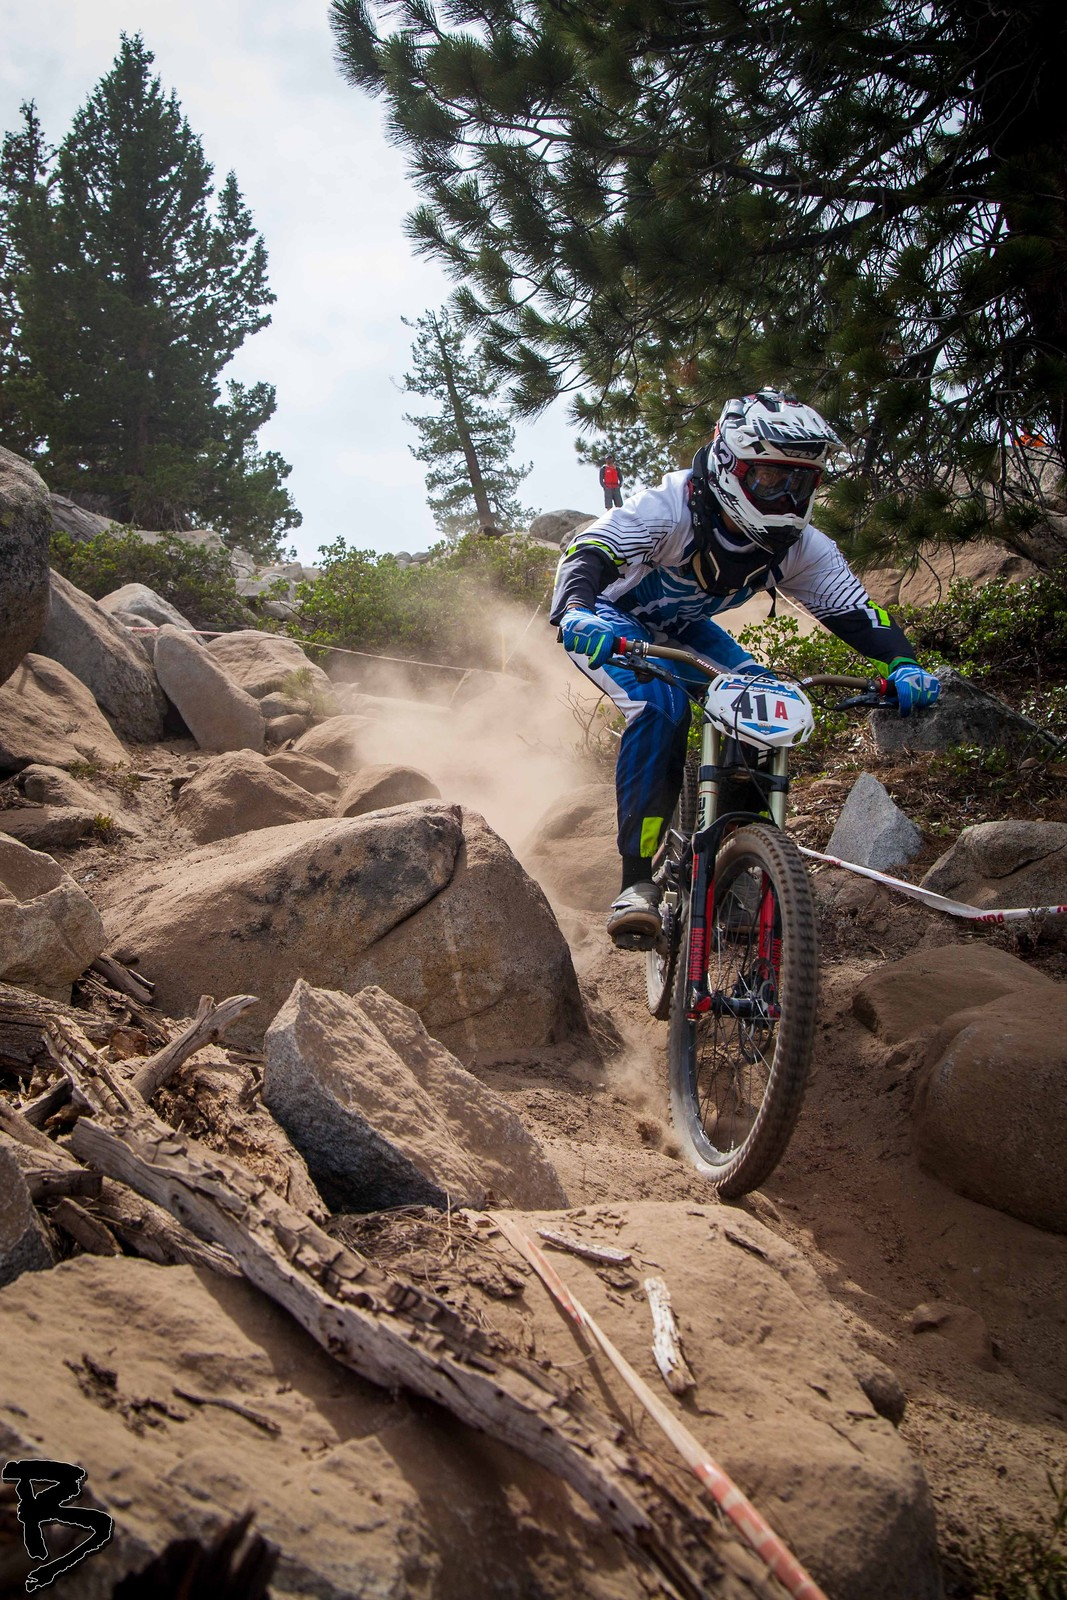 Speed, Rocks, And Dust - GnarHuck - Mountain Biking Pictures - Vital MTB